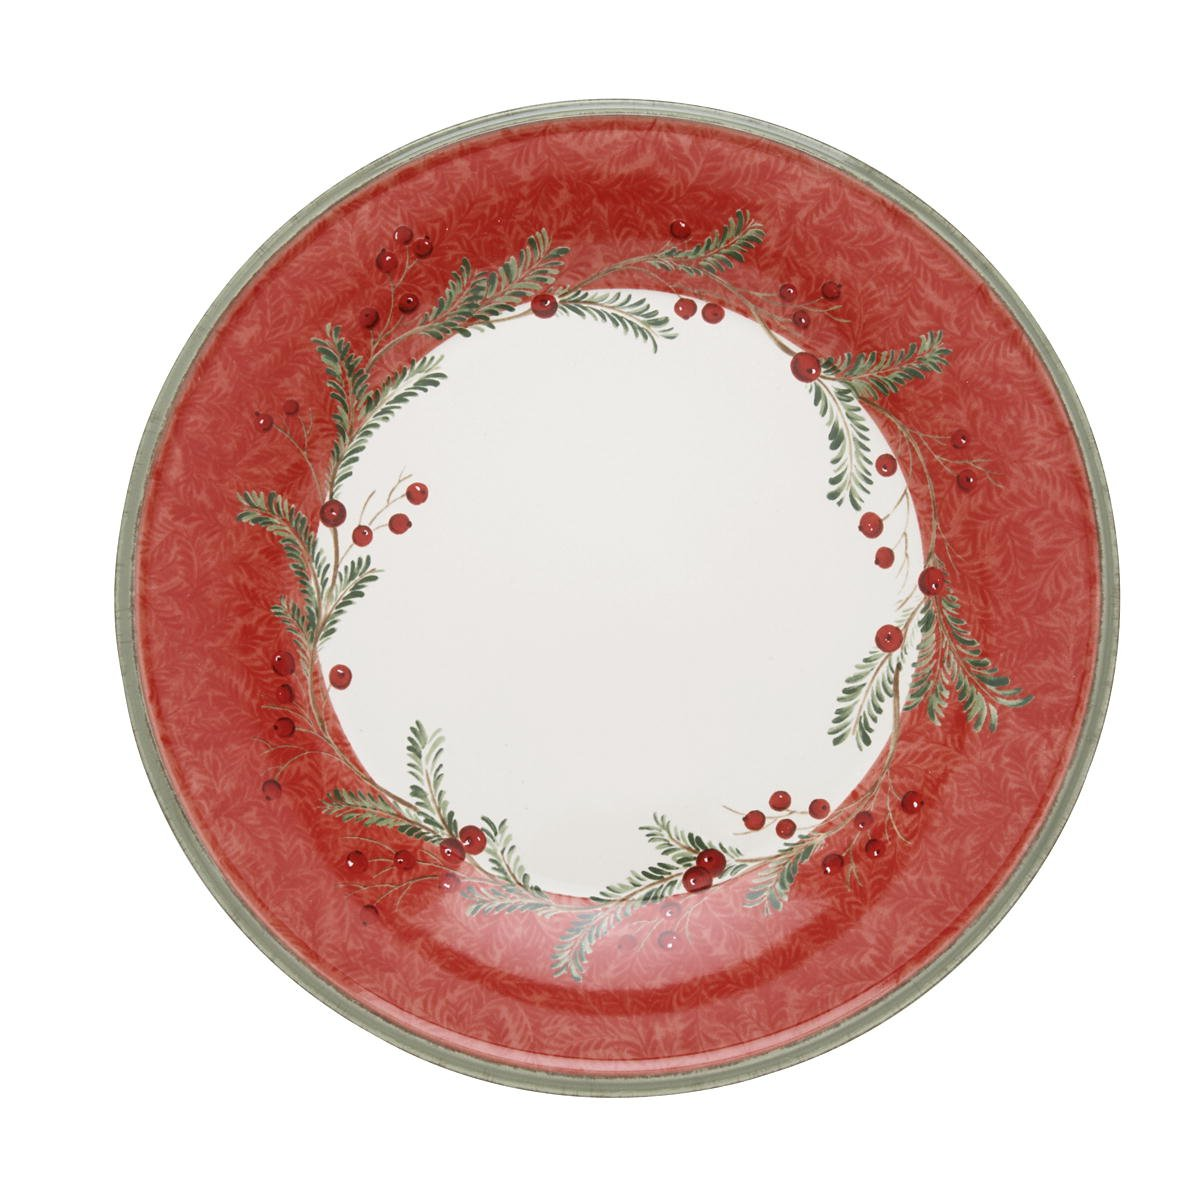 Amazon.com | Lenox Holiday Wreath Dinner Plate Dessert Plates Dinner Plates  sc 1 st  Amazon.com & Amazon.com | Lenox Holiday Wreath Dinner Plate: Dessert Plates ...